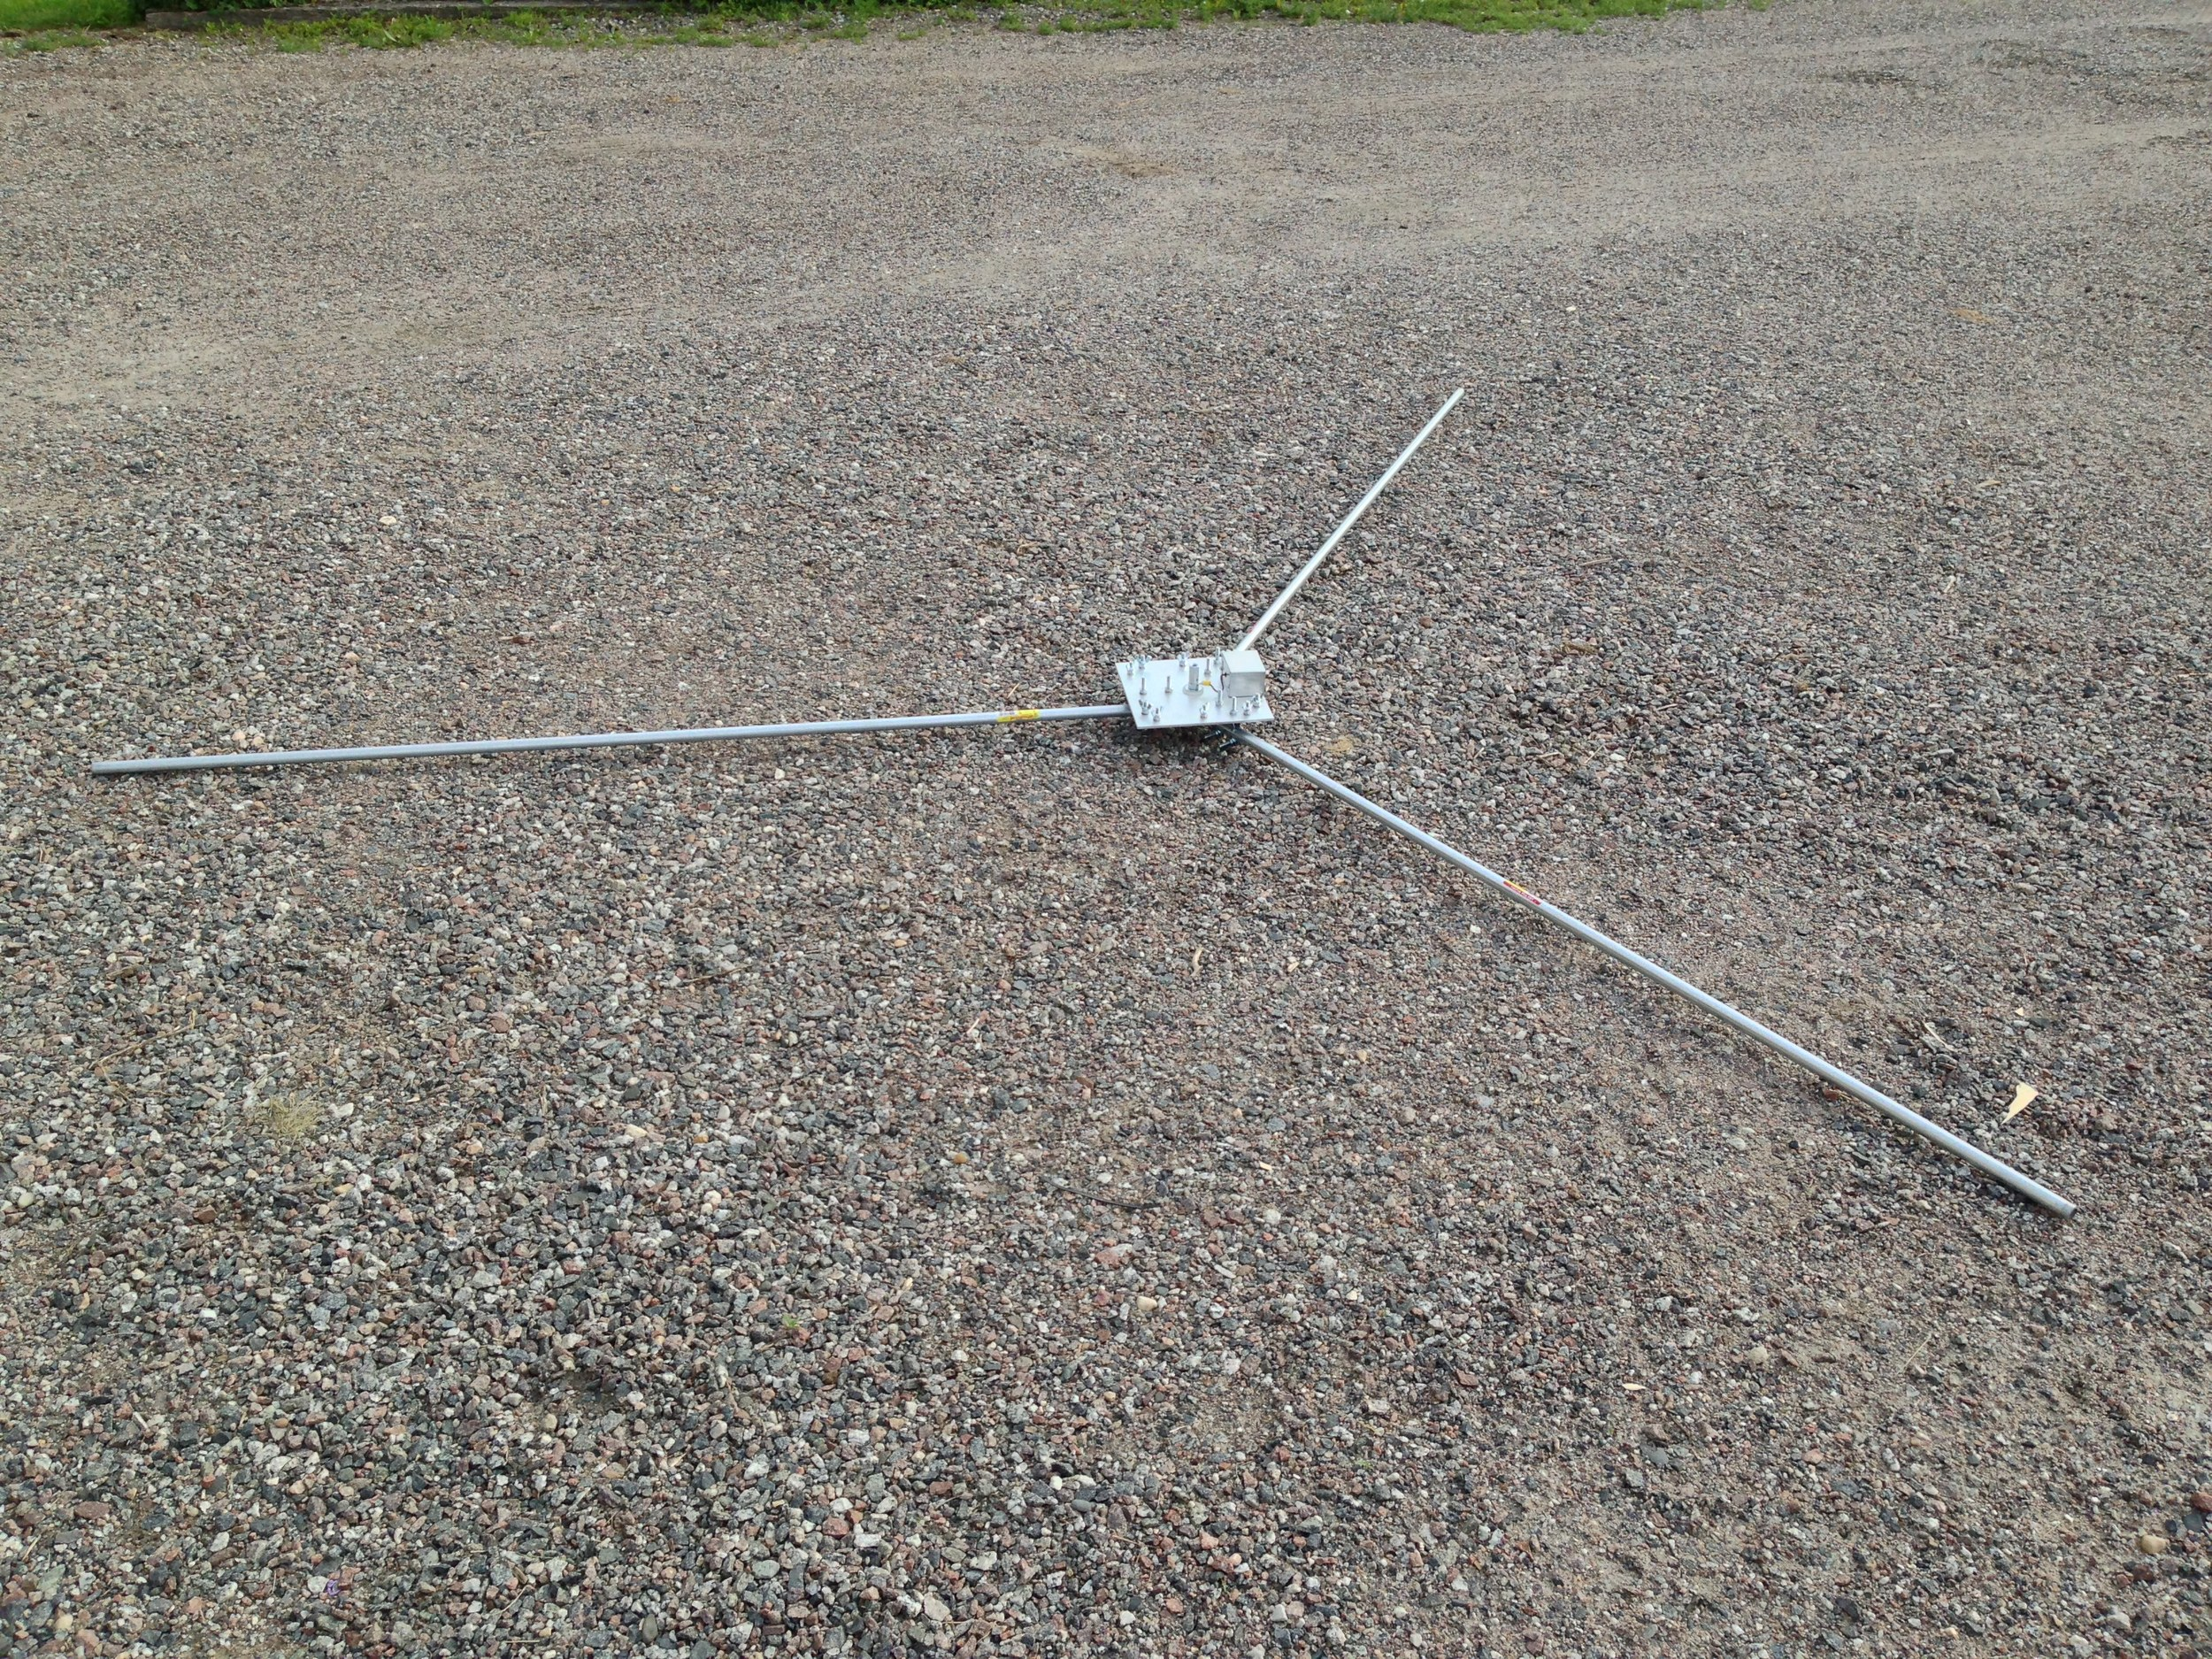 The base and conduit (support) deployed in the driveway for testing